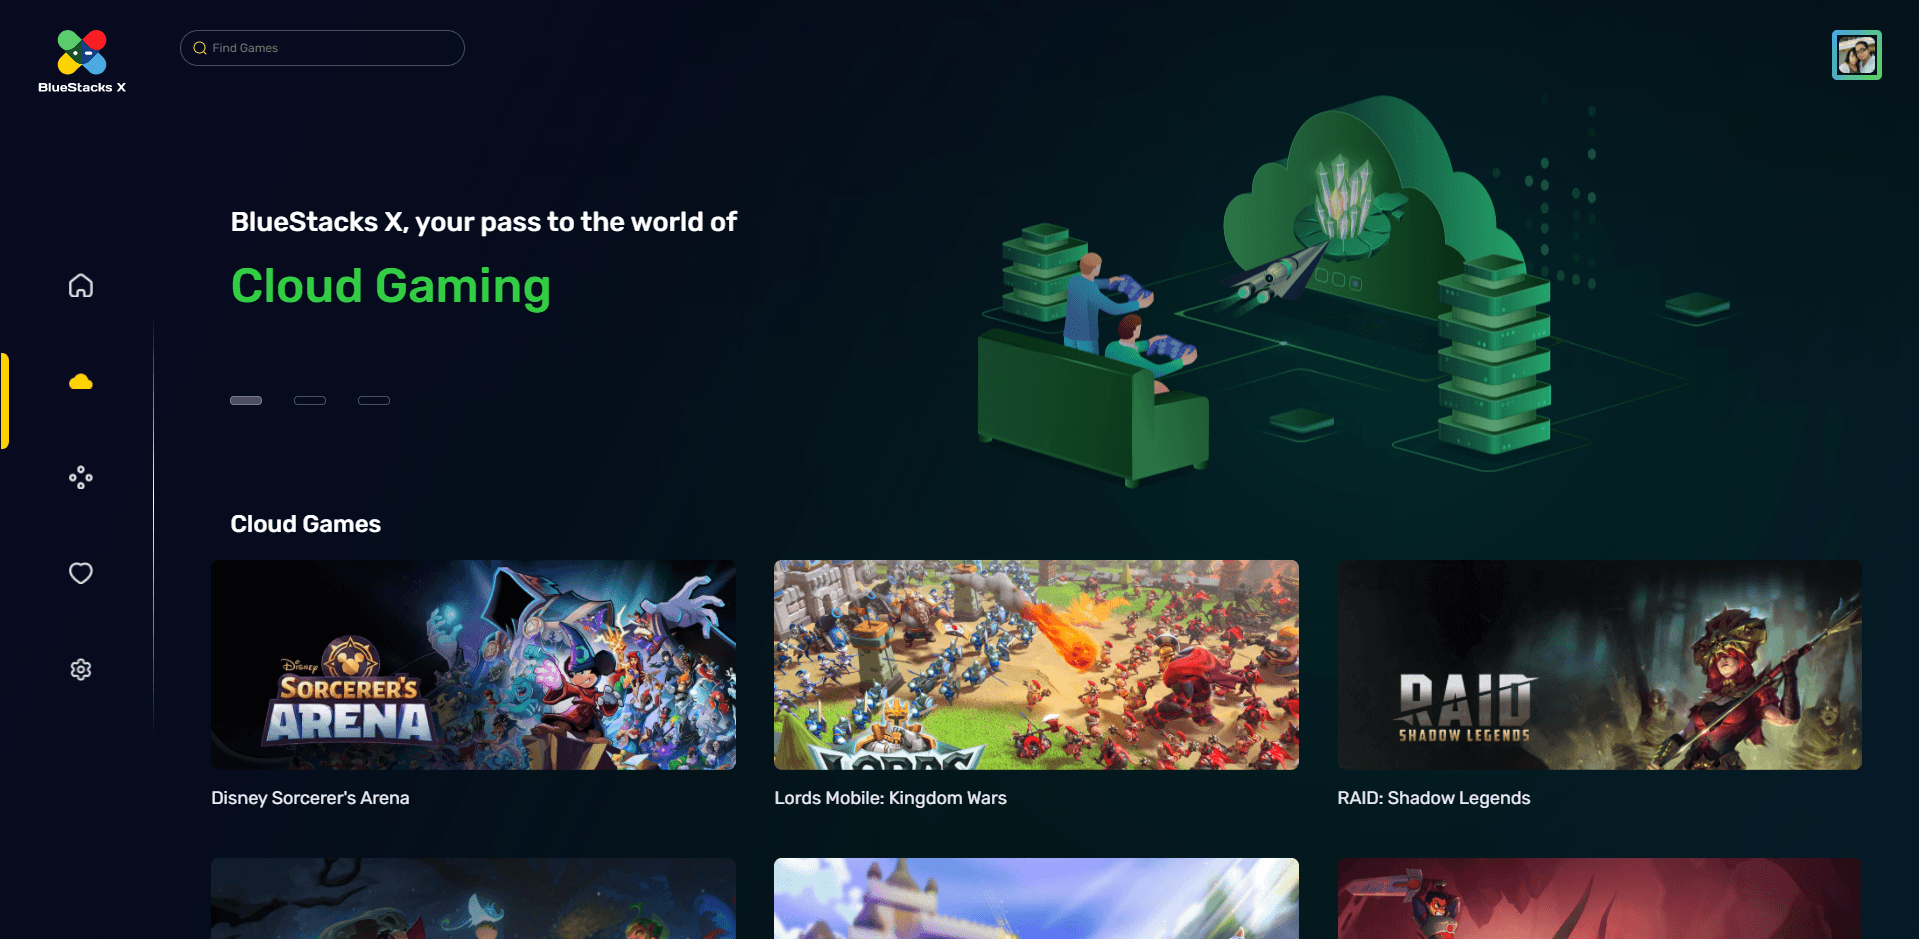 What is BlueStacks X? What is Cloud Gaming? Who can Play?